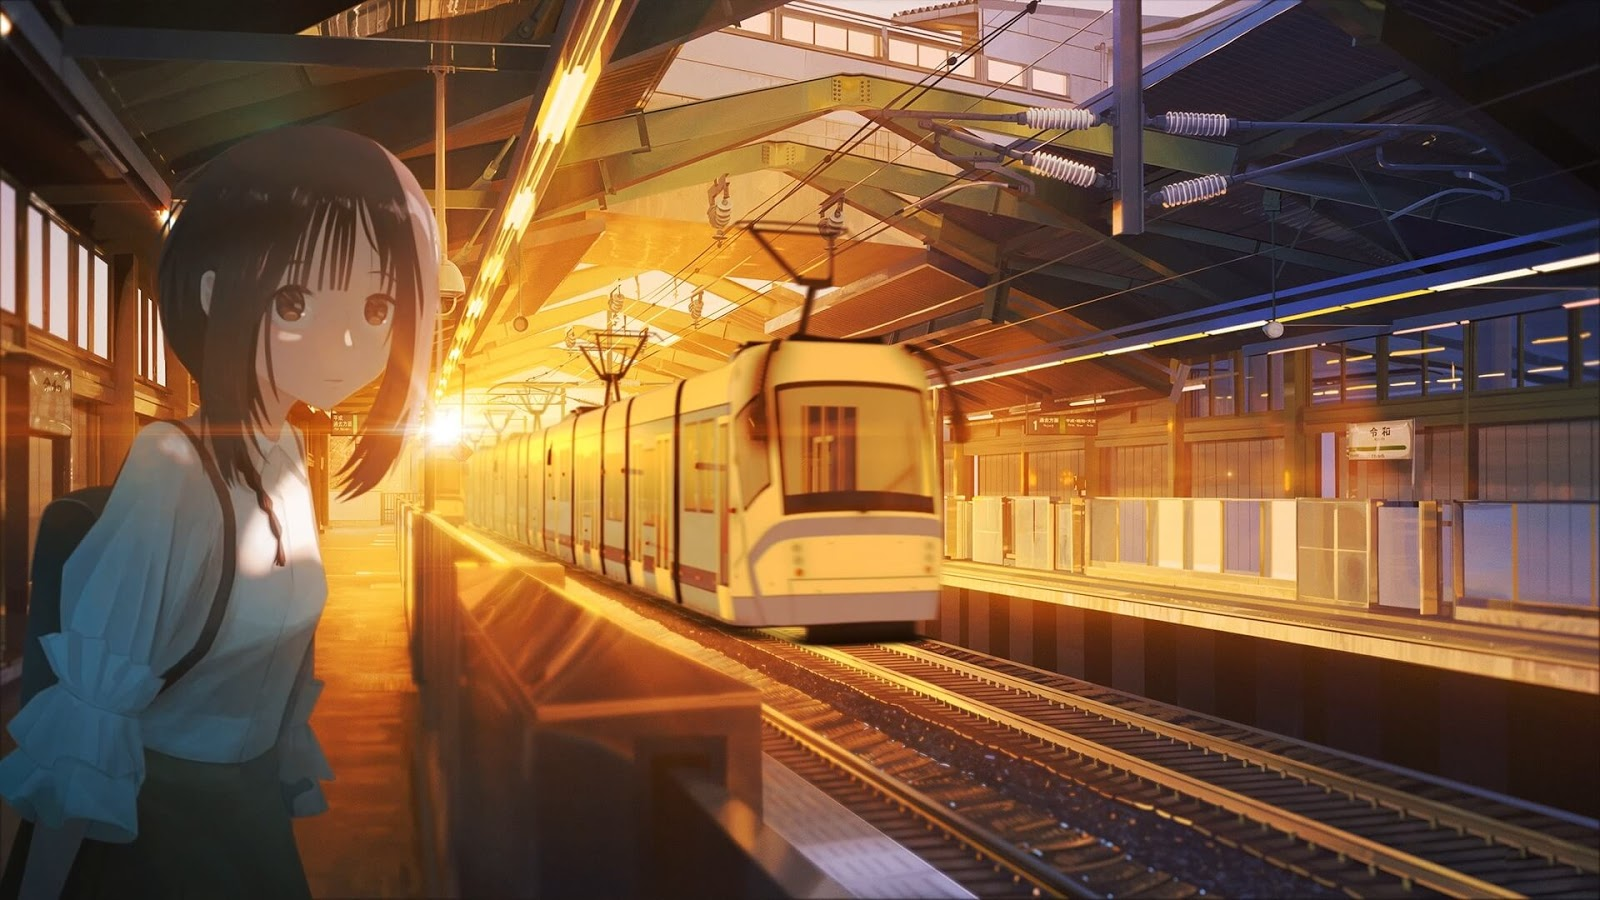 Waiting at Station [Wallpaper Engine Anime]